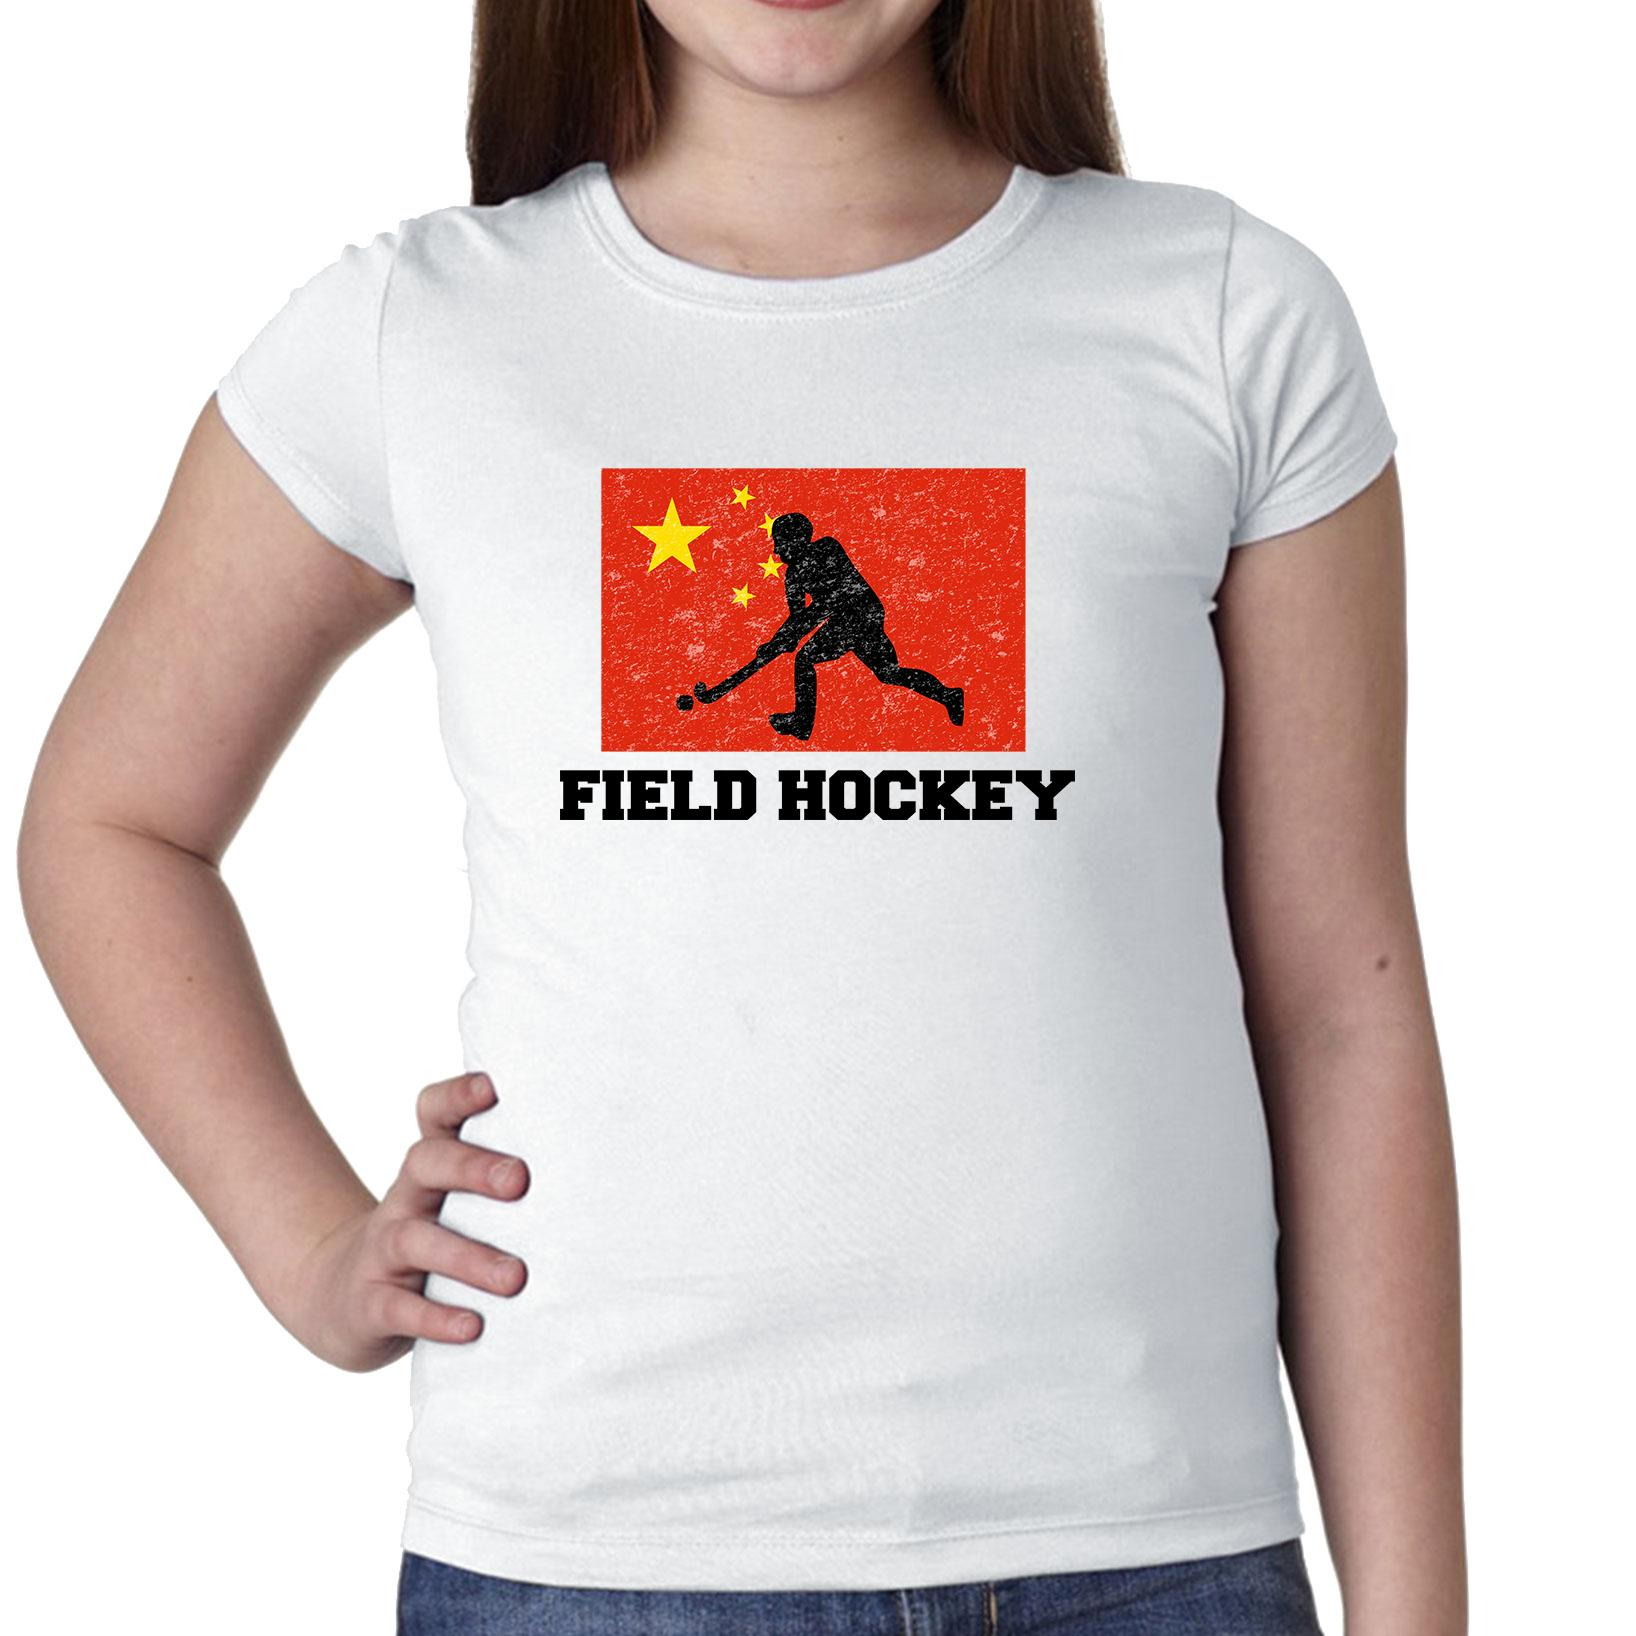 China Olympic Field Hockey Flag Silhouette Girl's Cotton Youth T-Shirt by Hollywood Thread